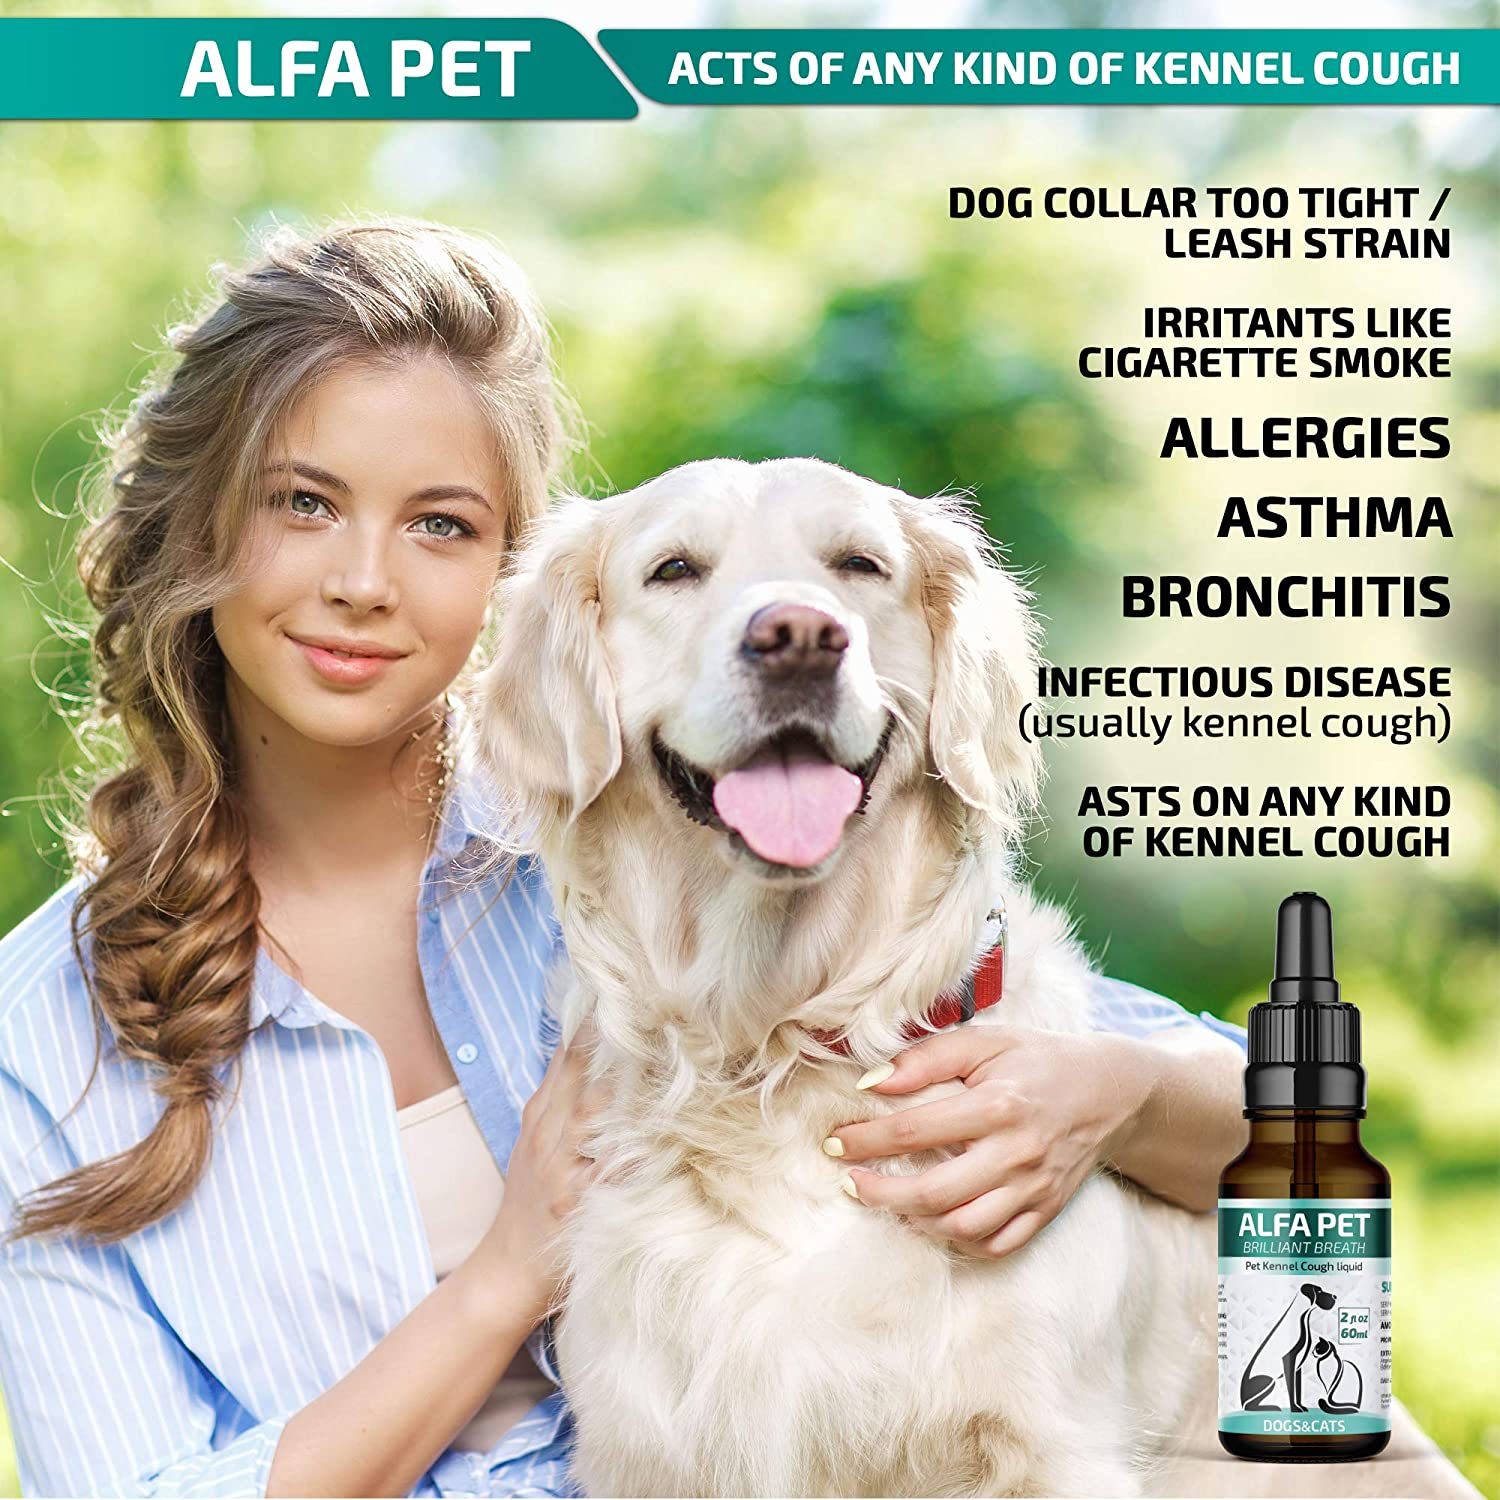 Kennel Cough Medicine for Dogs - Organic Dog Cough Medicine for Colds &  Allergies - Natural Kennel Cough Treatment with Mullein Leaf & Elderberry